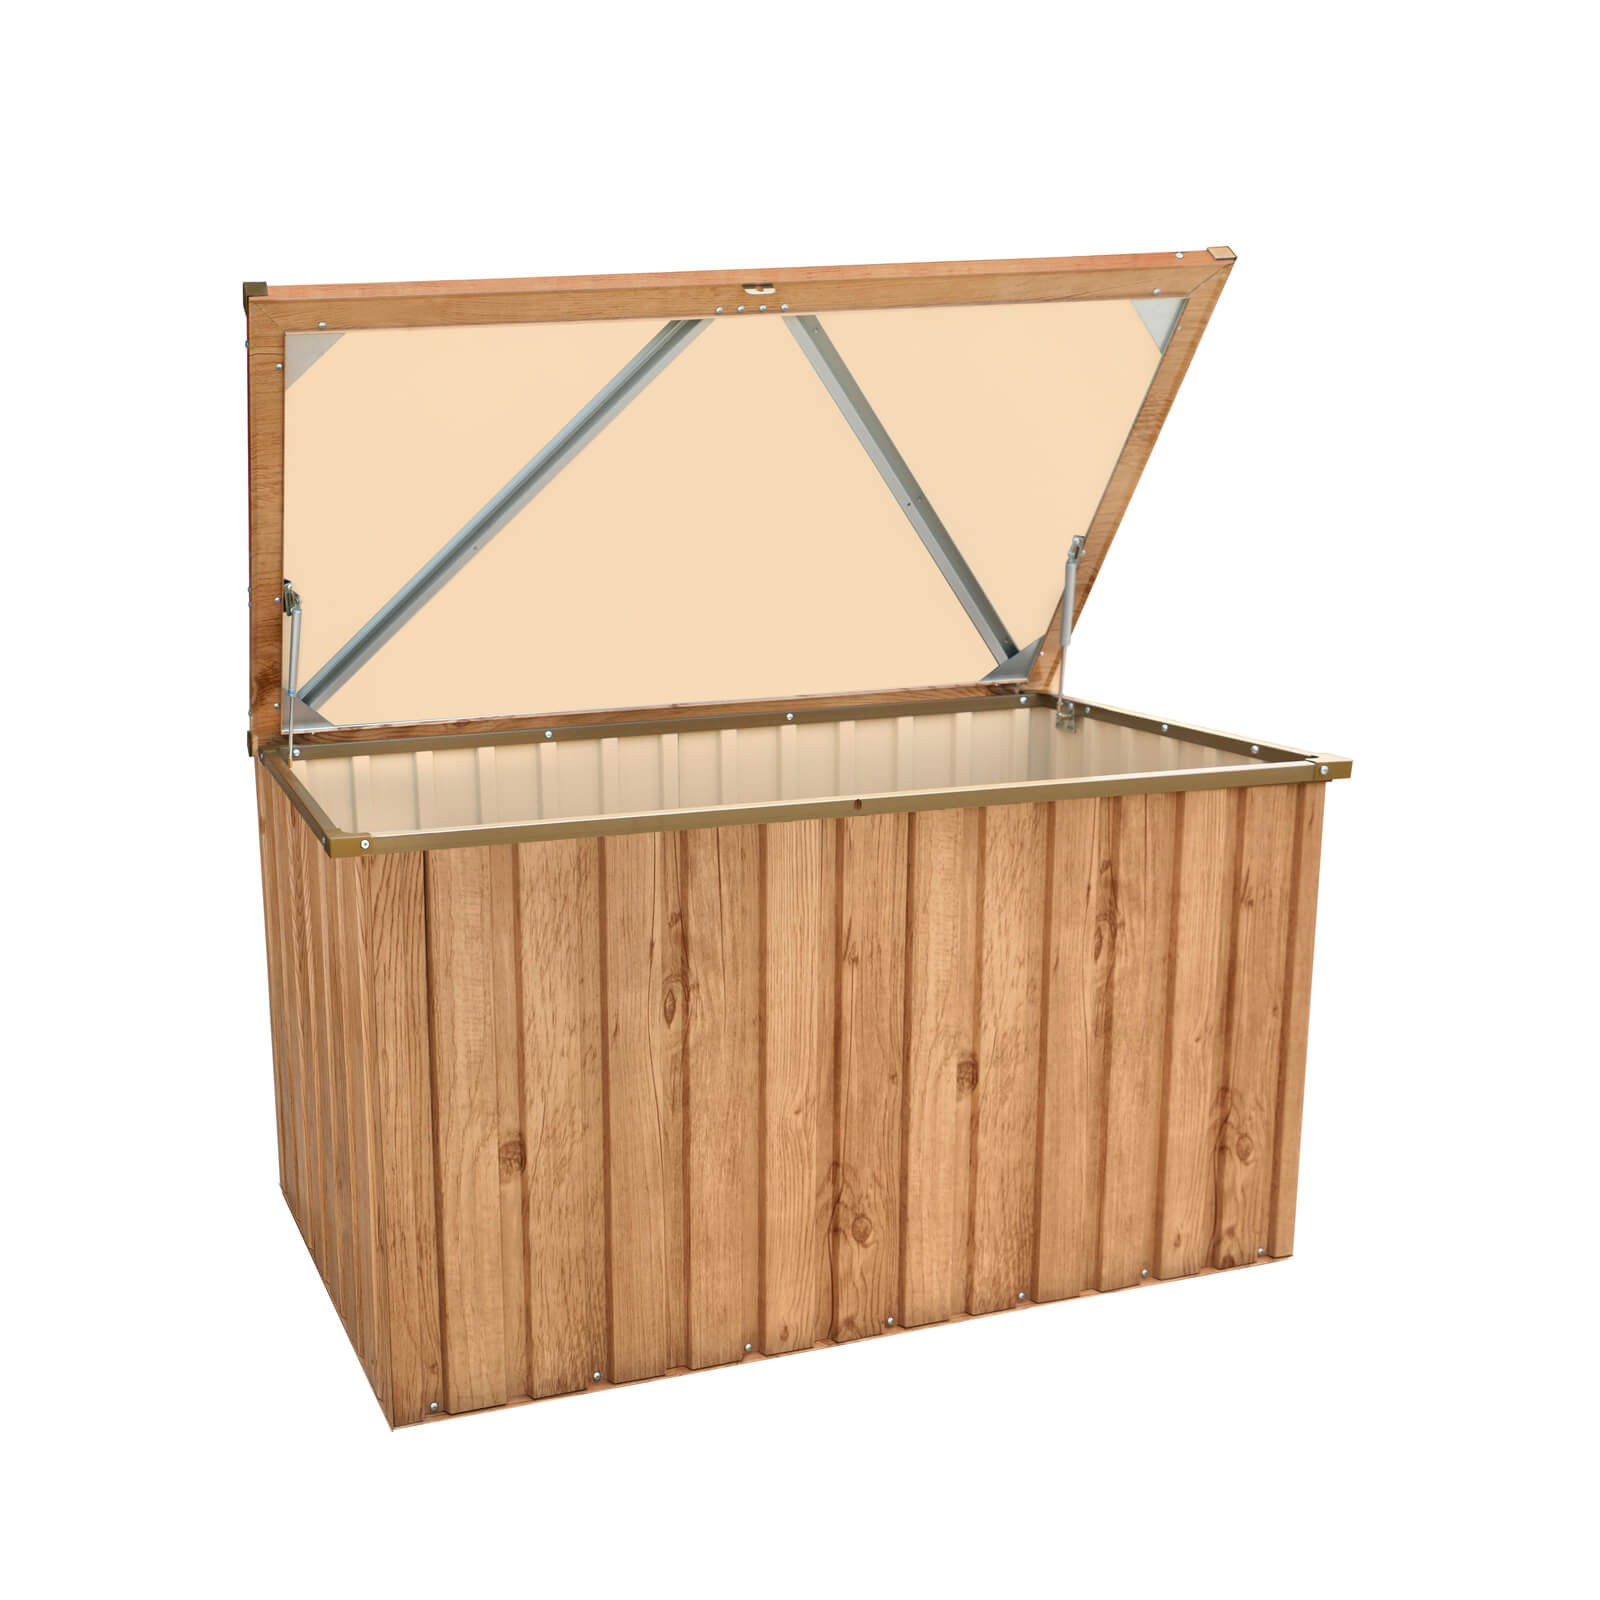 metall aufbewahrungsbox gartenbox kissenbox ger tebox 135x70 cm holz dekor eiche 638801710455 ebay. Black Bedroom Furniture Sets. Home Design Ideas